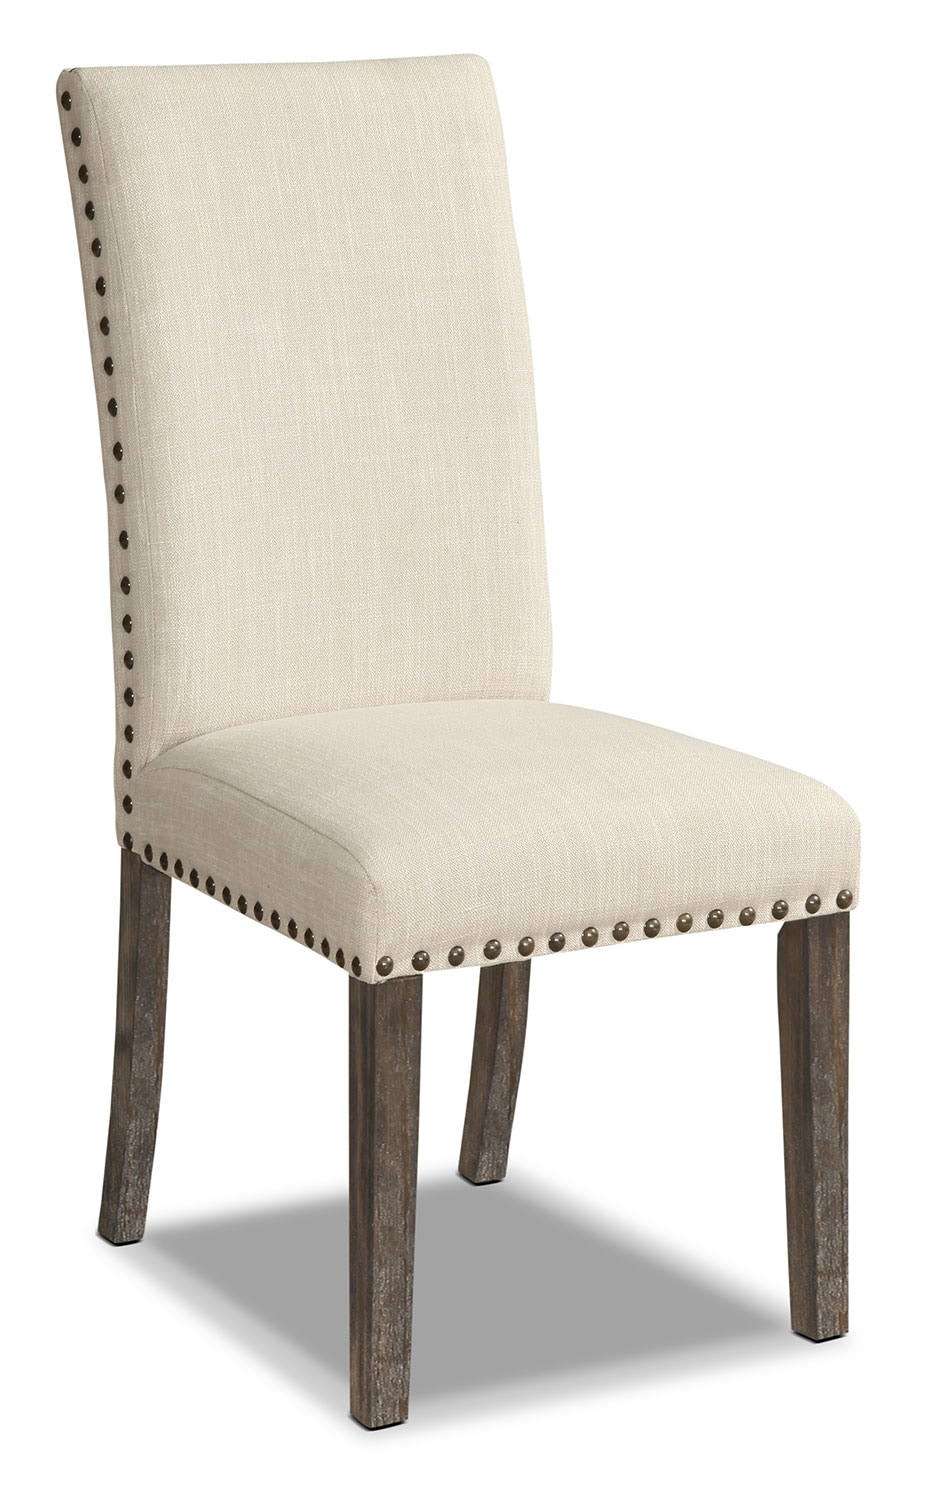 Dining Room Furniture - Aldo Dining Chair